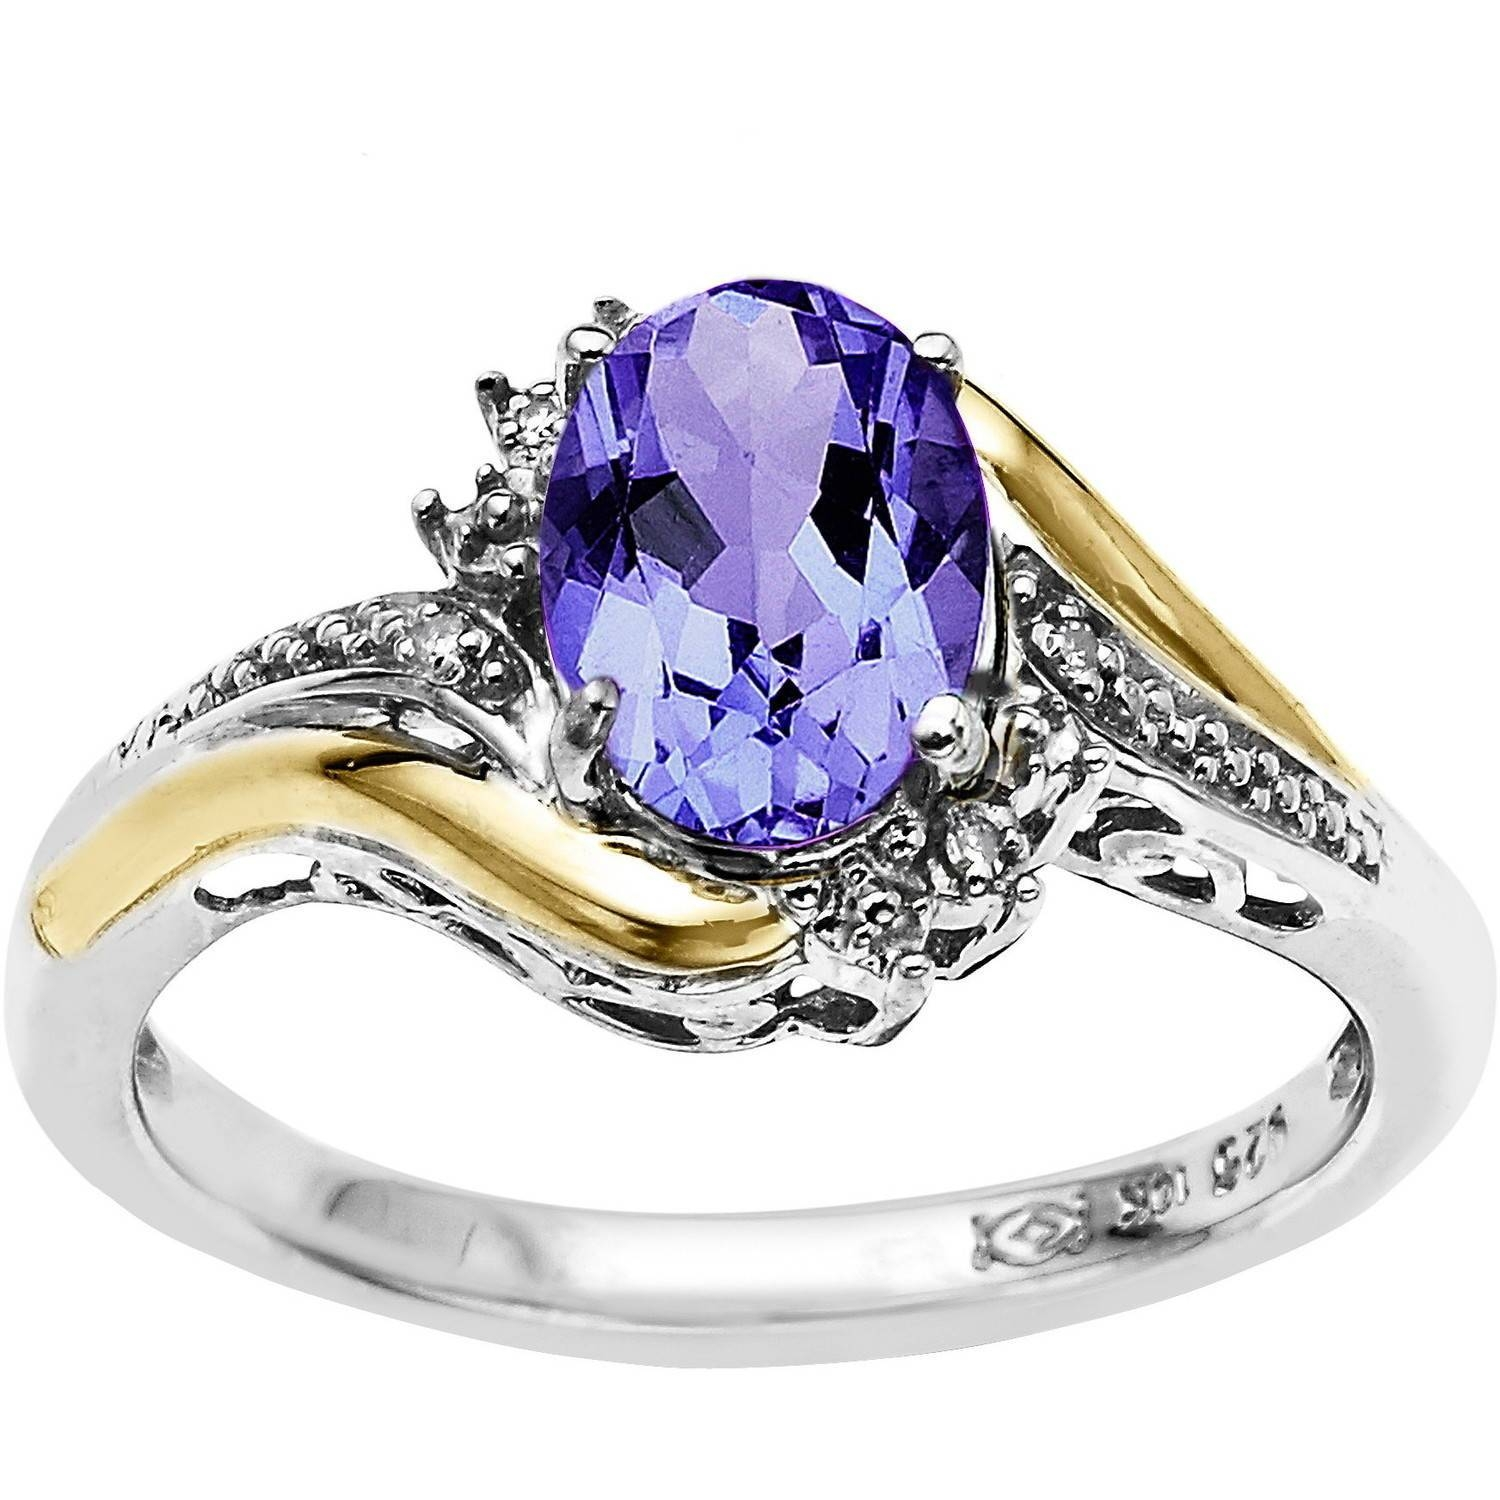 Duet Sterling Silver With 10kt Yellow Gold Oval Amethyst And Intended For Wedding Rings With Amethyst (Gallery 14 of 15)